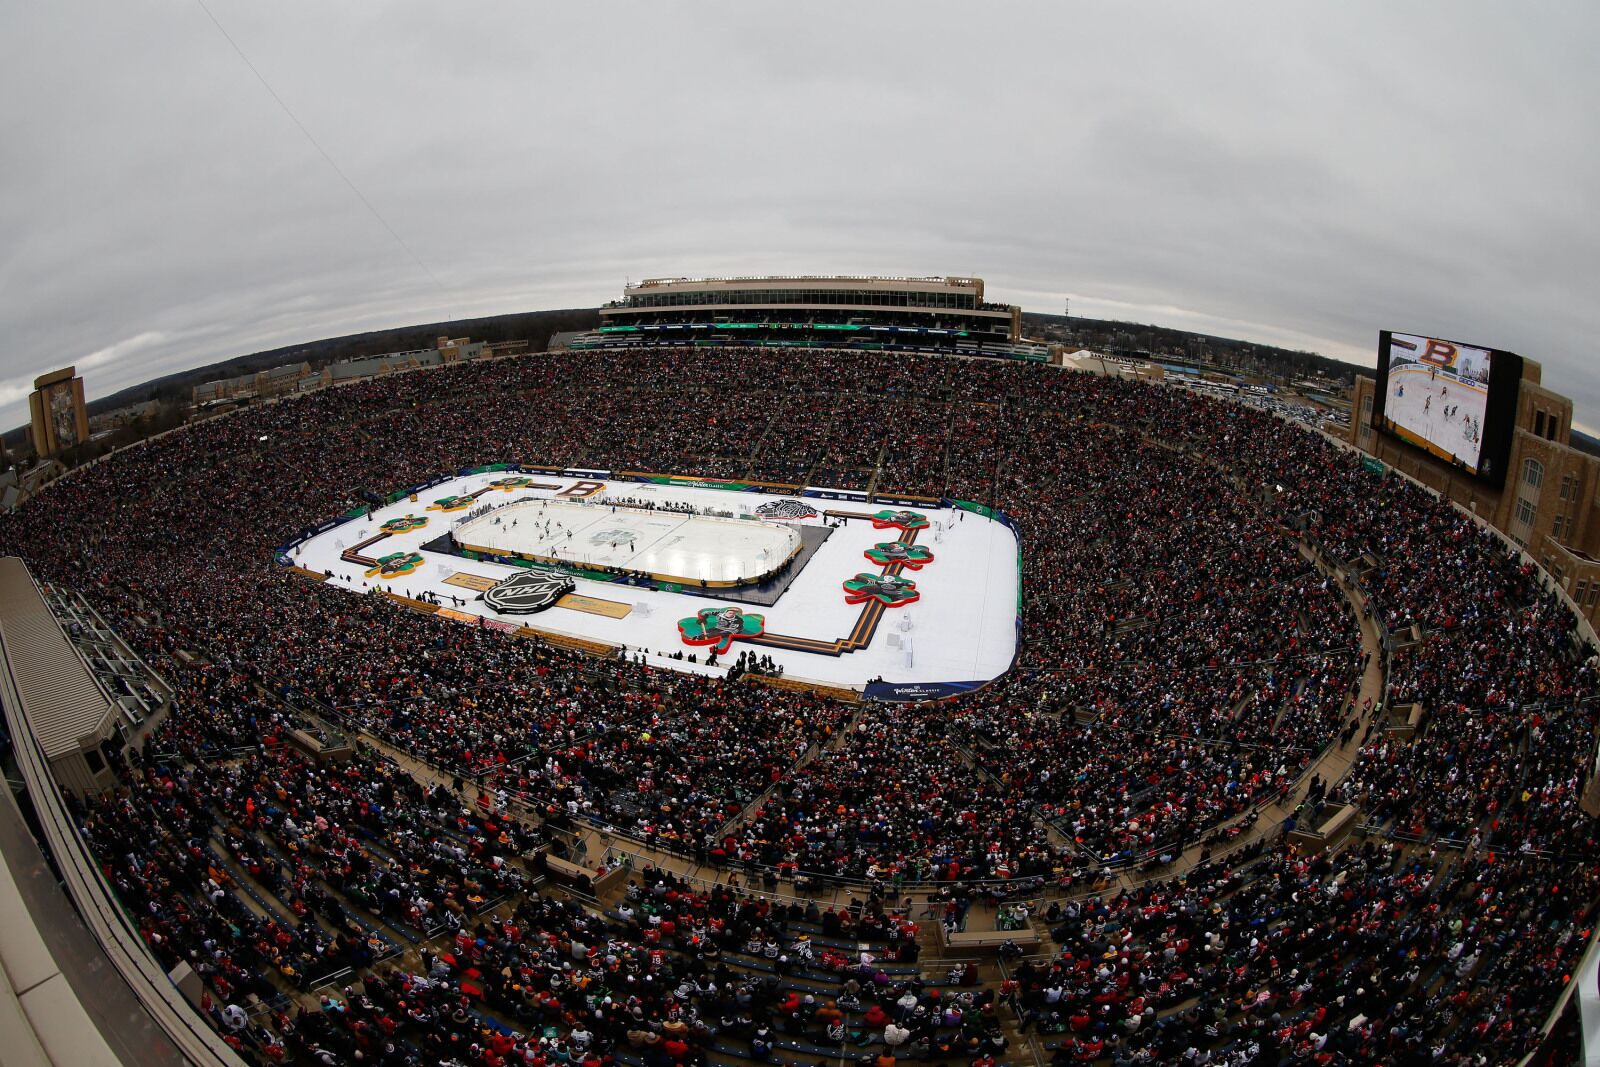 Nhl Outdoor Games 2020.Dallas Stars 2020 Winter Classic A Great Opportunity For